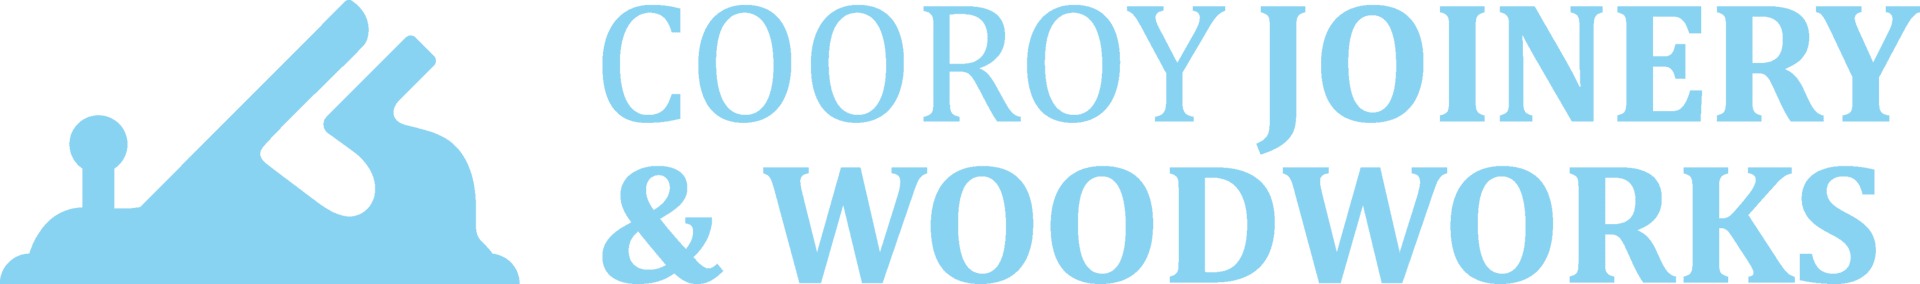 cooroy joinery and woodworks